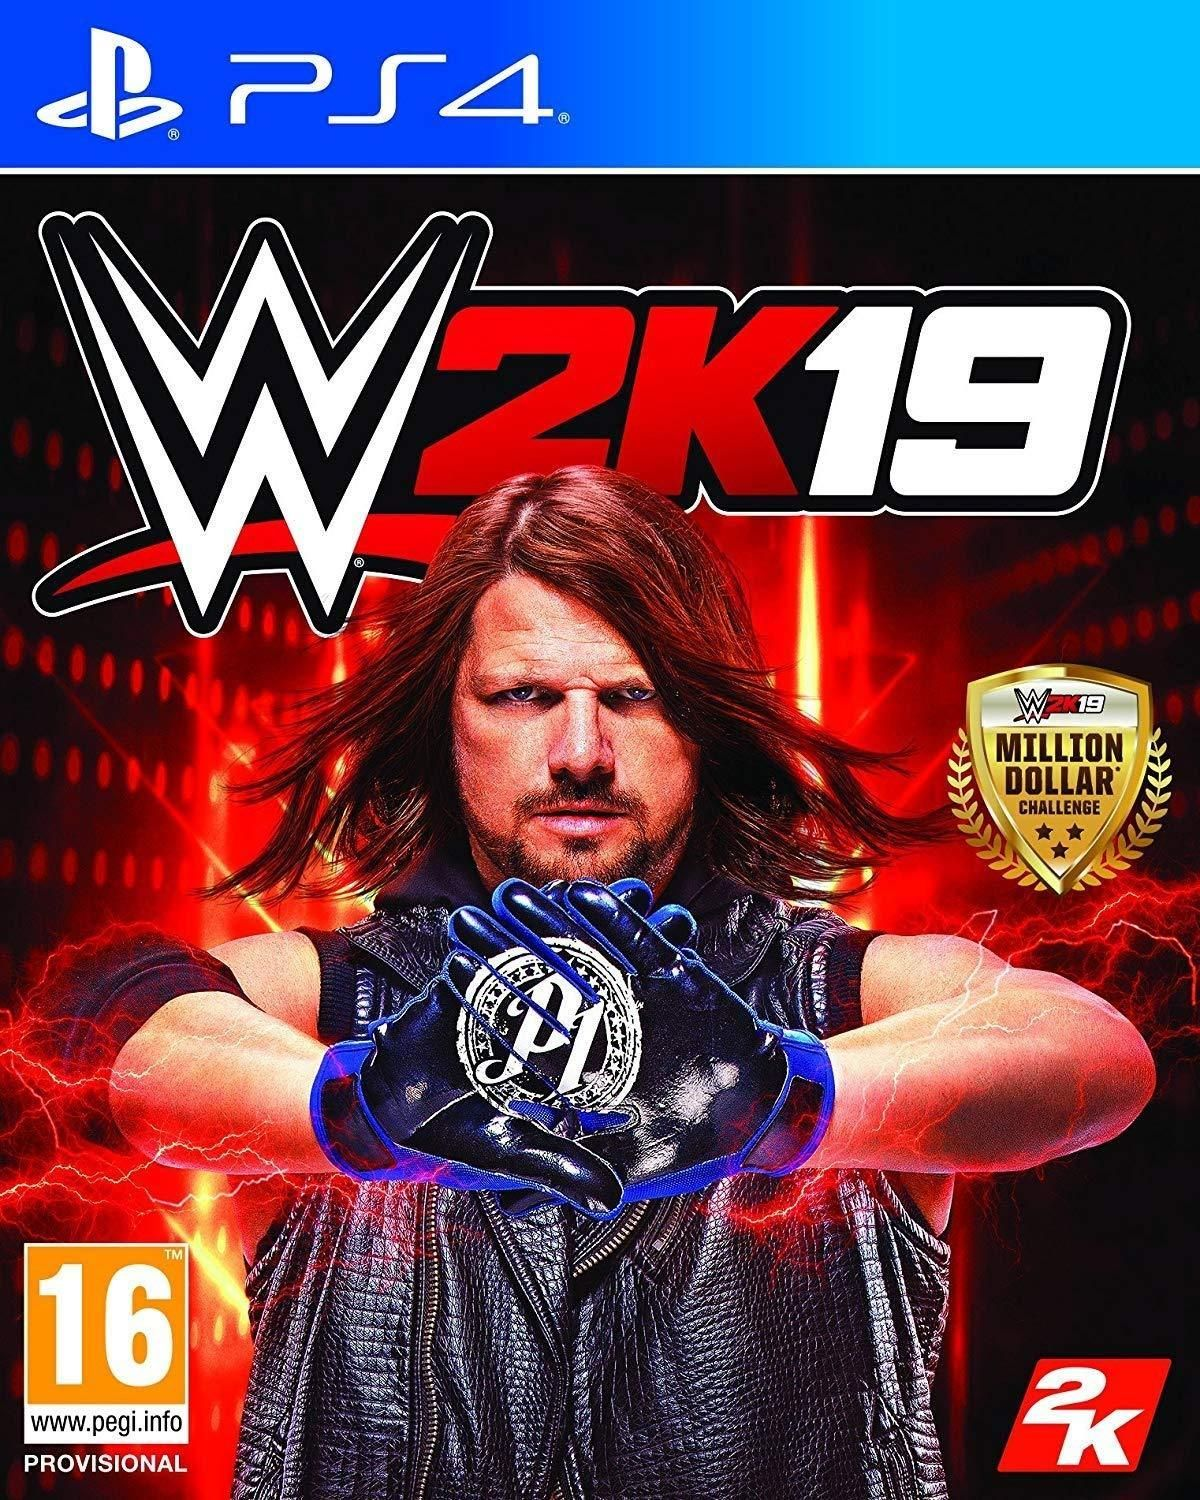 Lucha Libre Juego Online Wwe 2k19 Videojuego Ps4 Pc Y Xbox One Vandal